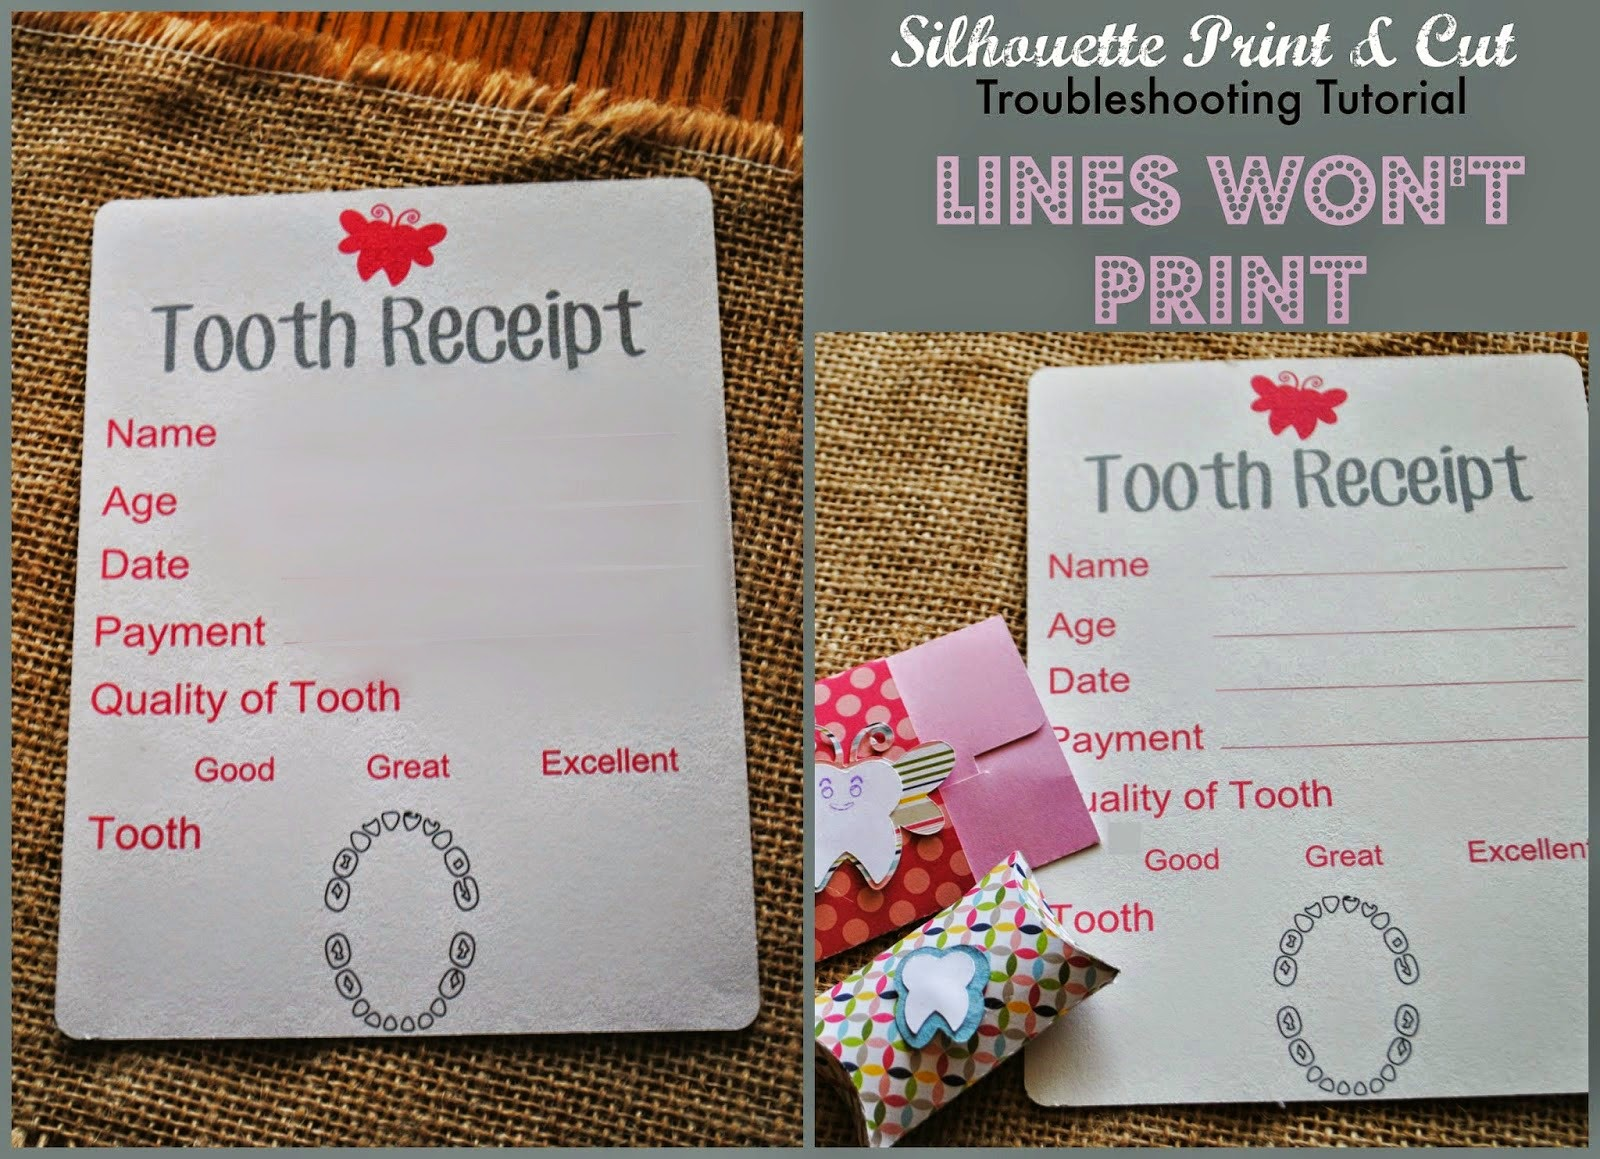 Print and cut, troubleshooting, lines not printing, Silhouette tutorial, Silhouette Studio